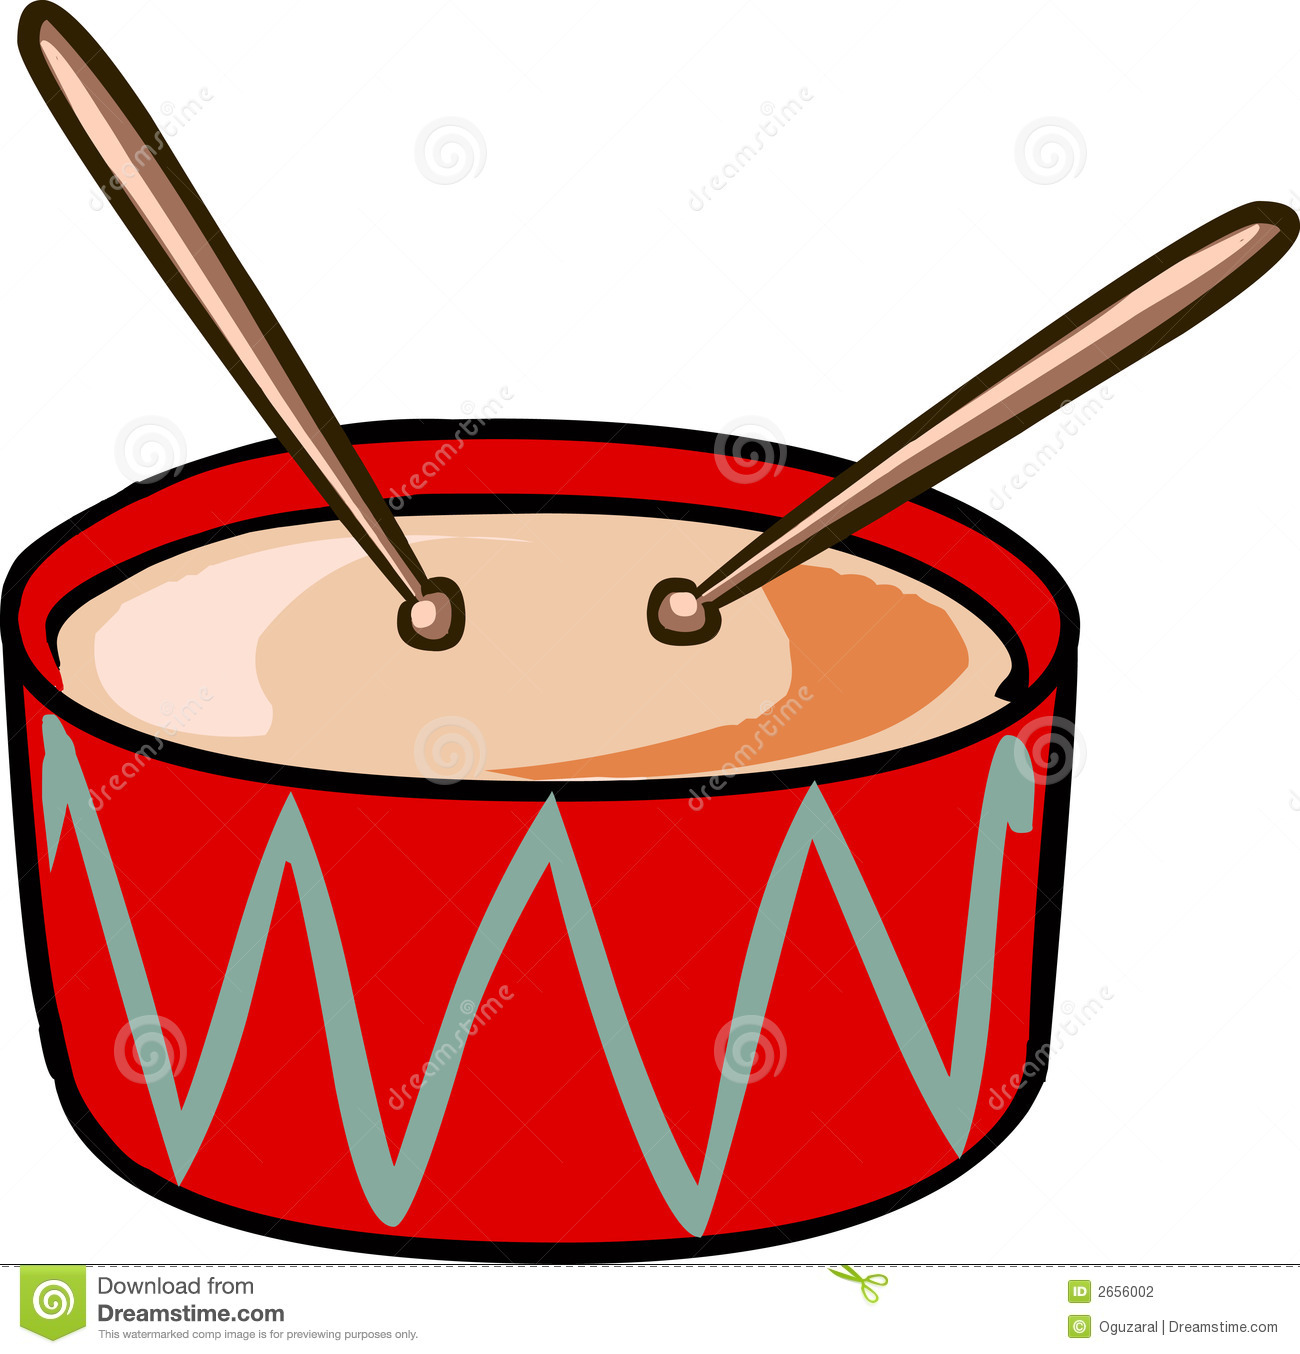 Marching Snare Drum Clip Art | Clipart Panda - Free ...